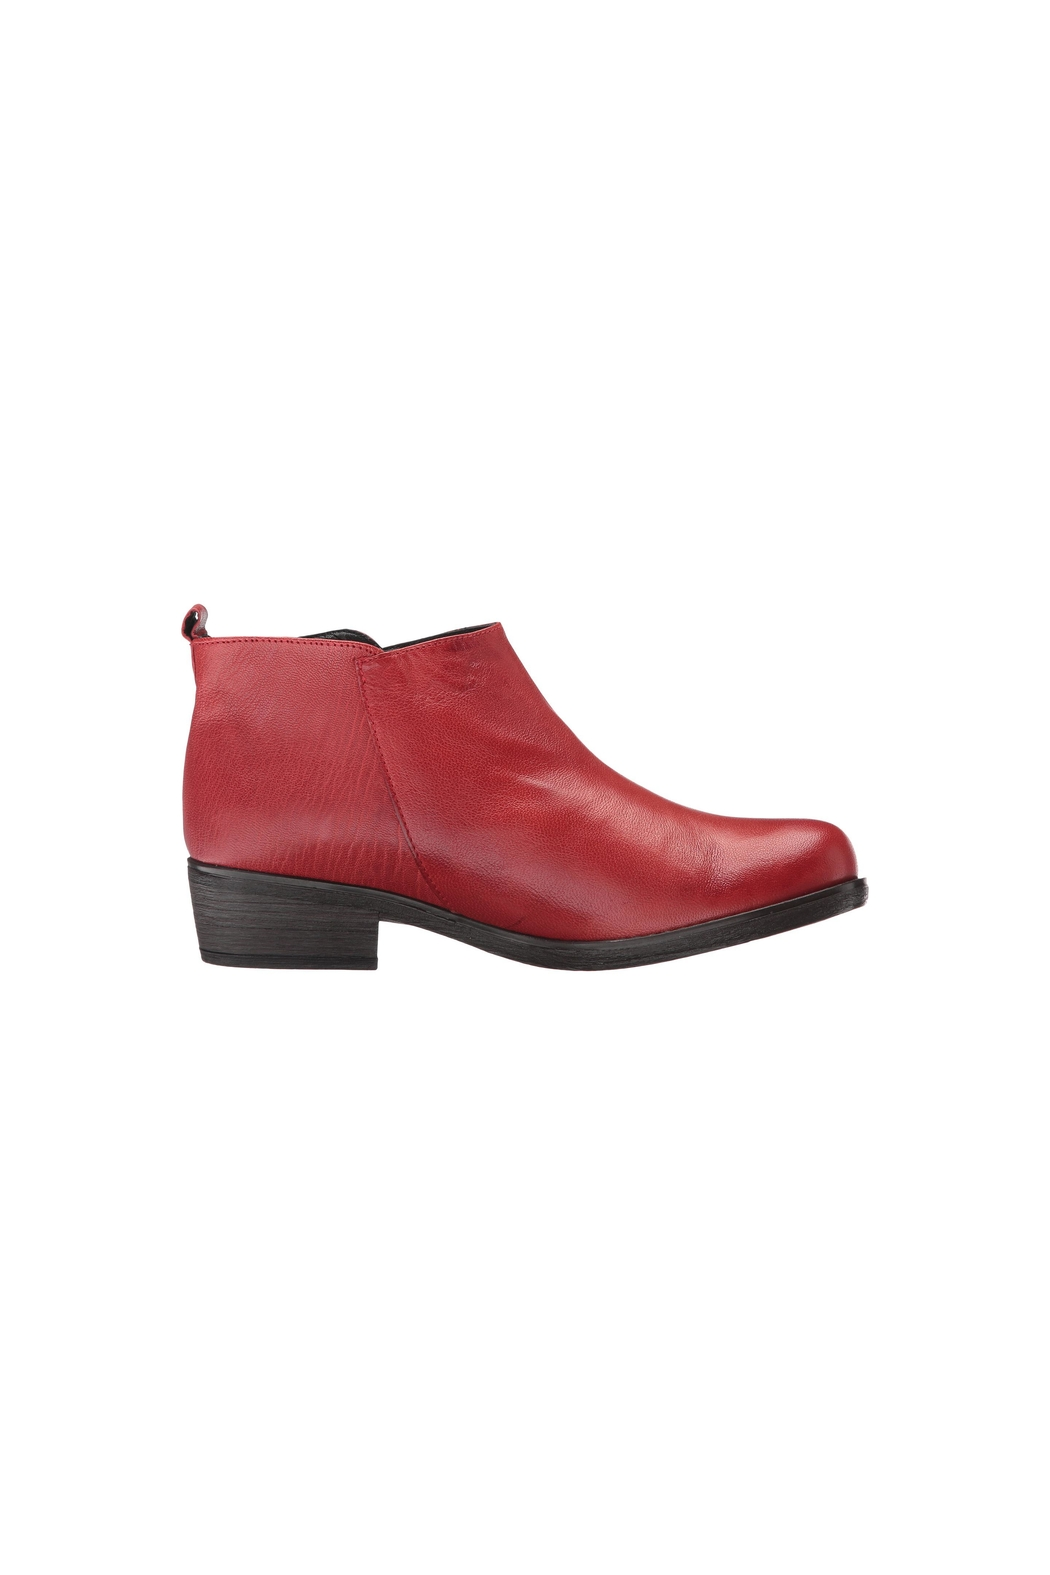 Eric Michael London Designer Bootie - Side Cropped Image